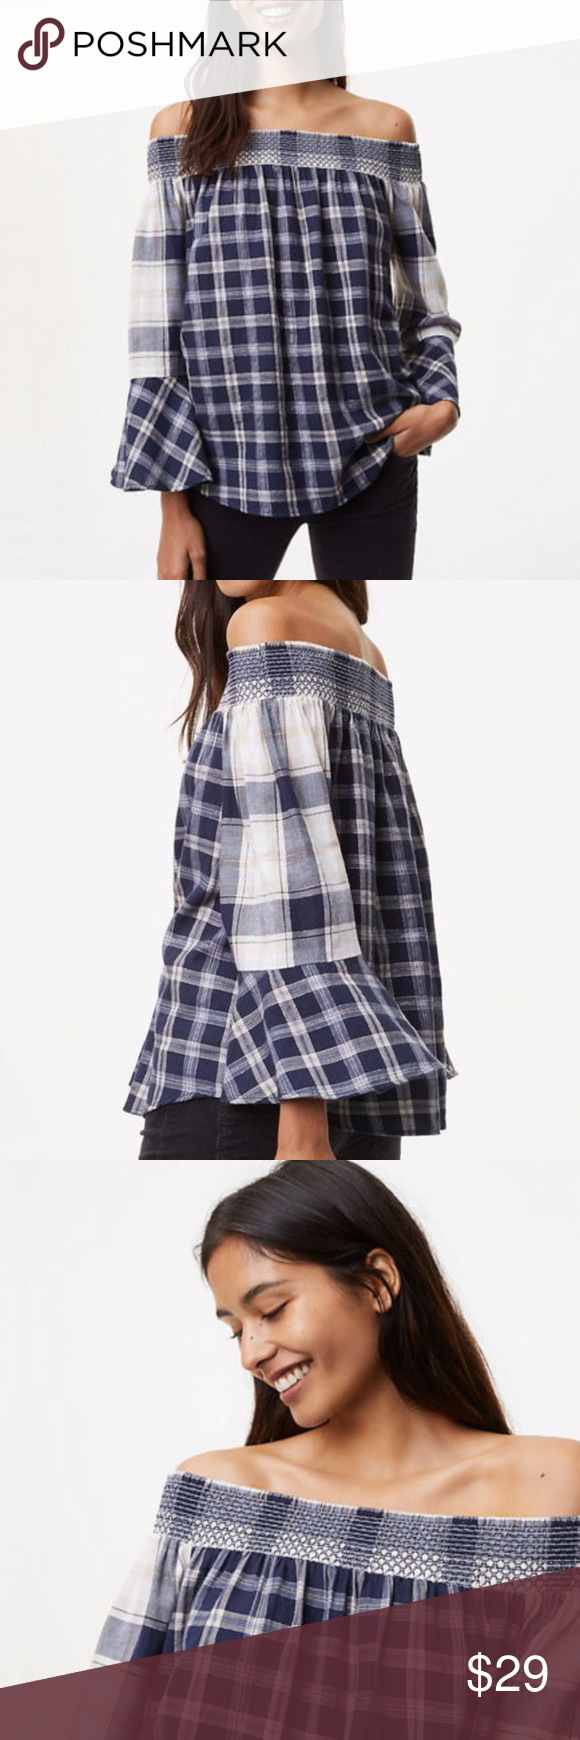 d27c58f17d7a6 Ann Taylor Loft Shimmer Plaid off the Shoulder Top Subtly shimmer meets  mixed plaid for an off the shoulder blouse with sartorial polish. Smocked  ...